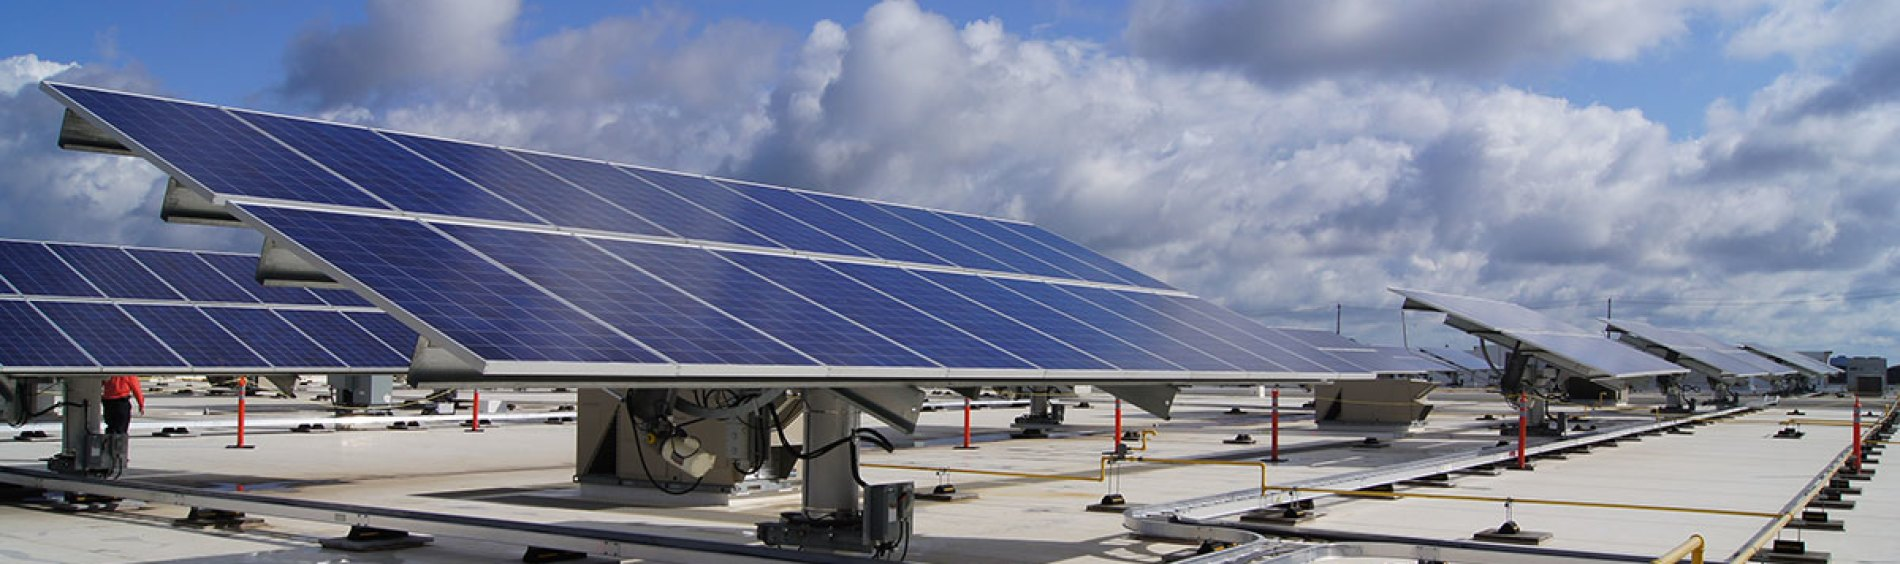 Industrial sized Solar panels on rooftop point skyward